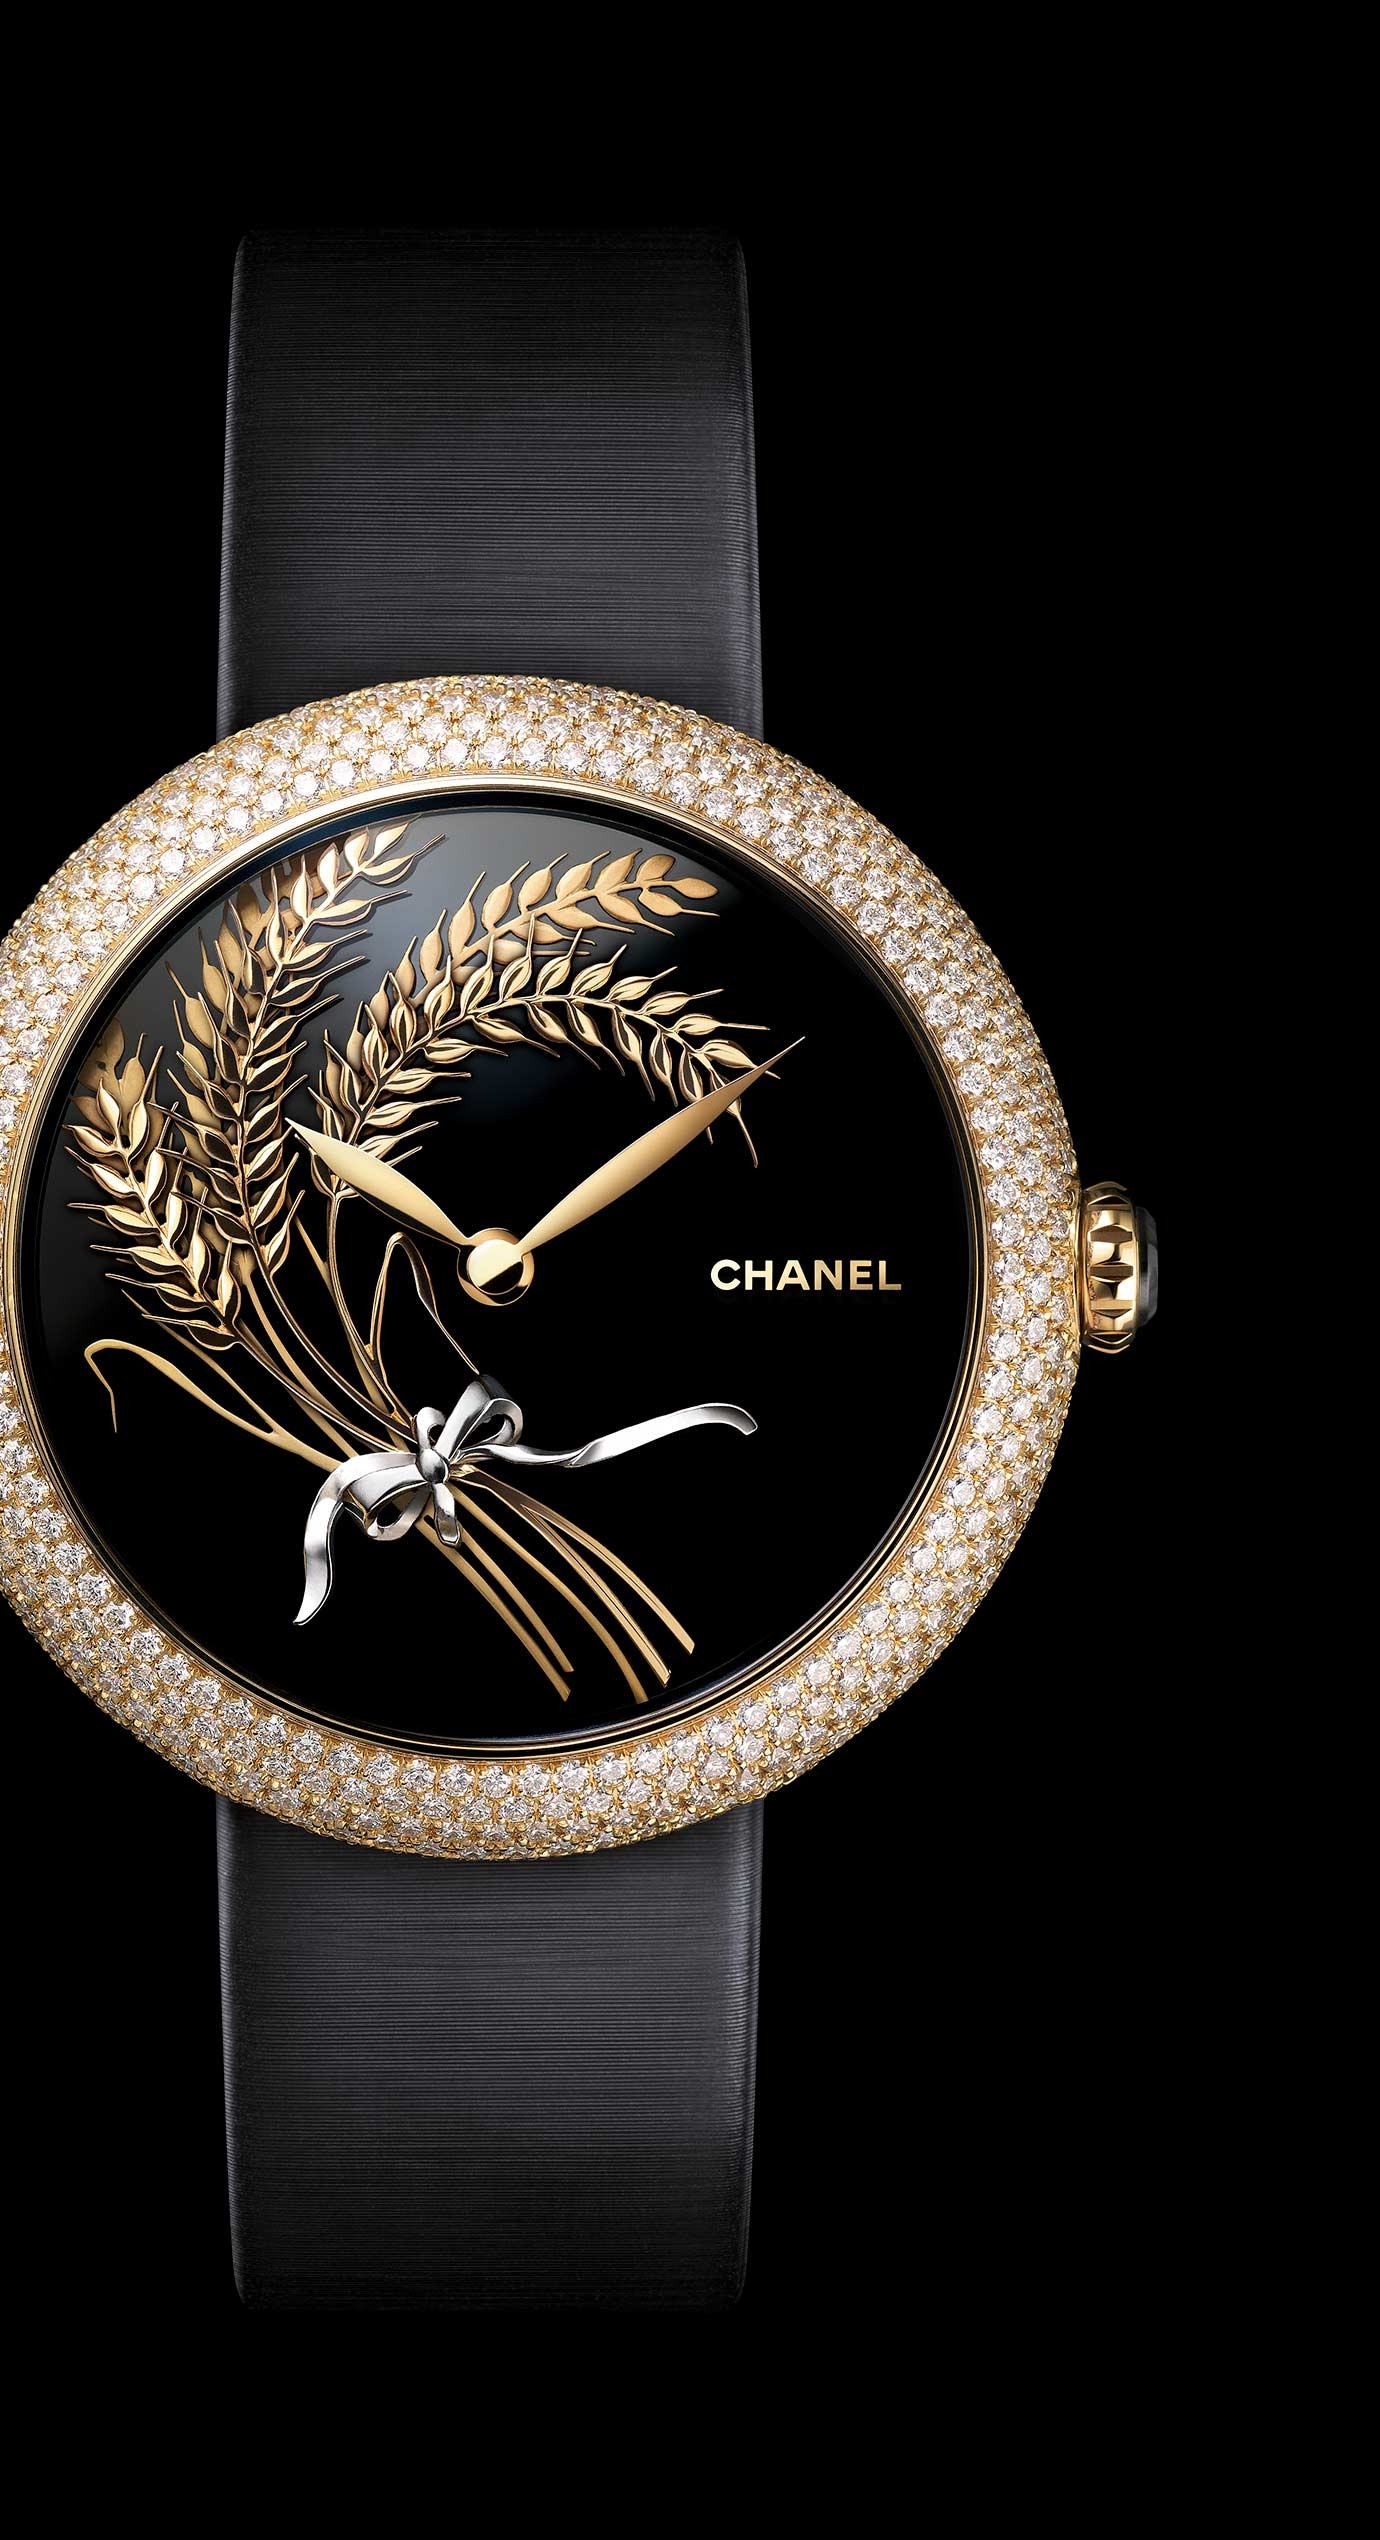 Mademoiselle Privé Les Blés de CHANEL Fine Jewellery watch - Onyx and sculpted gold - Enlarged view